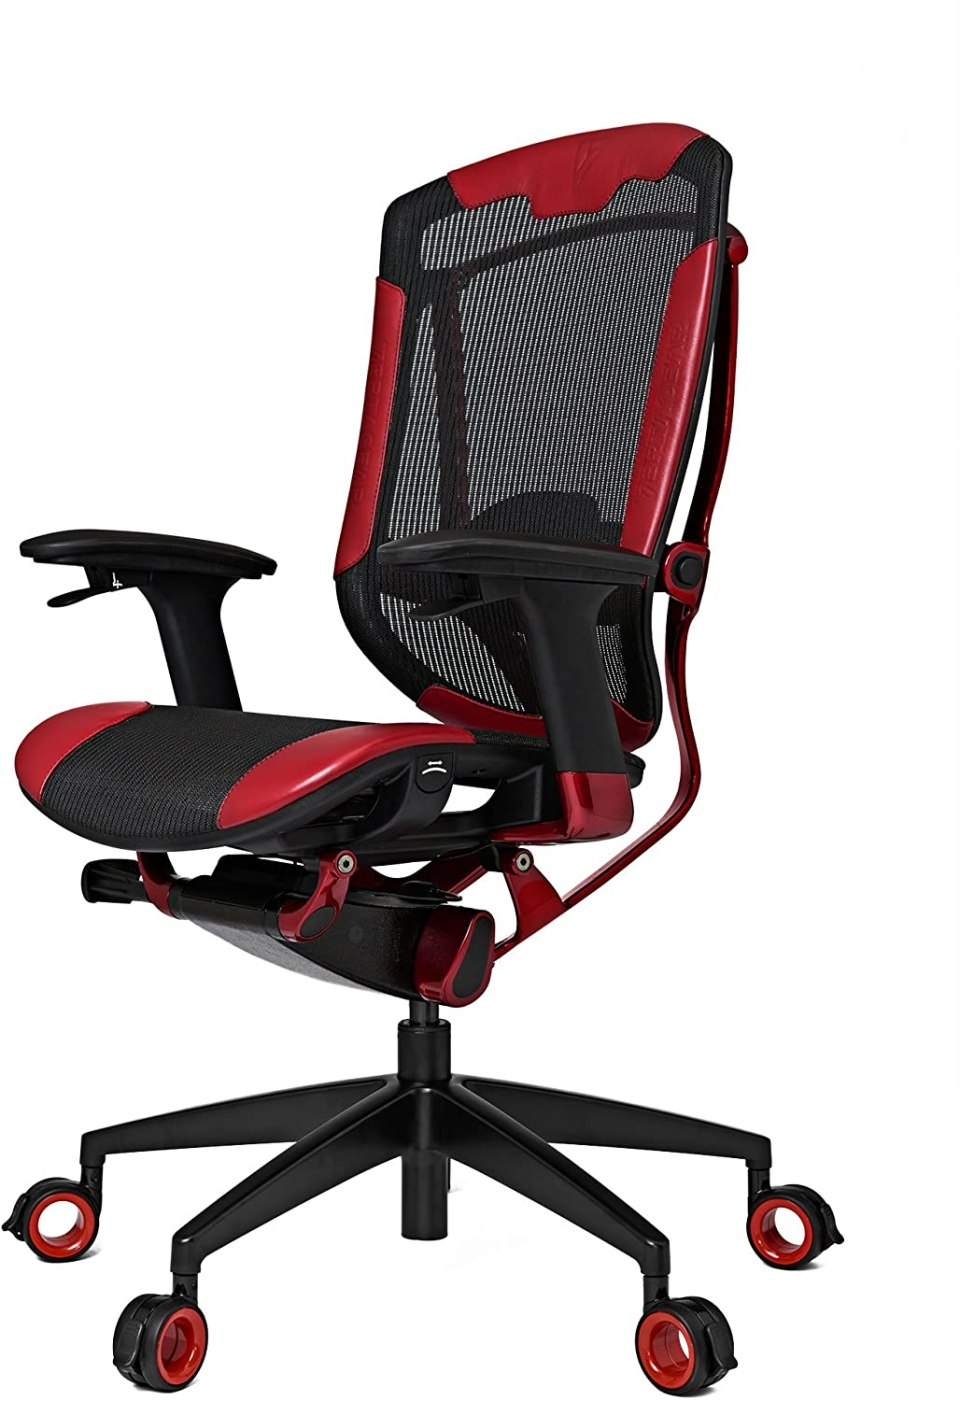 Vertagear best gaming chair usa 2021